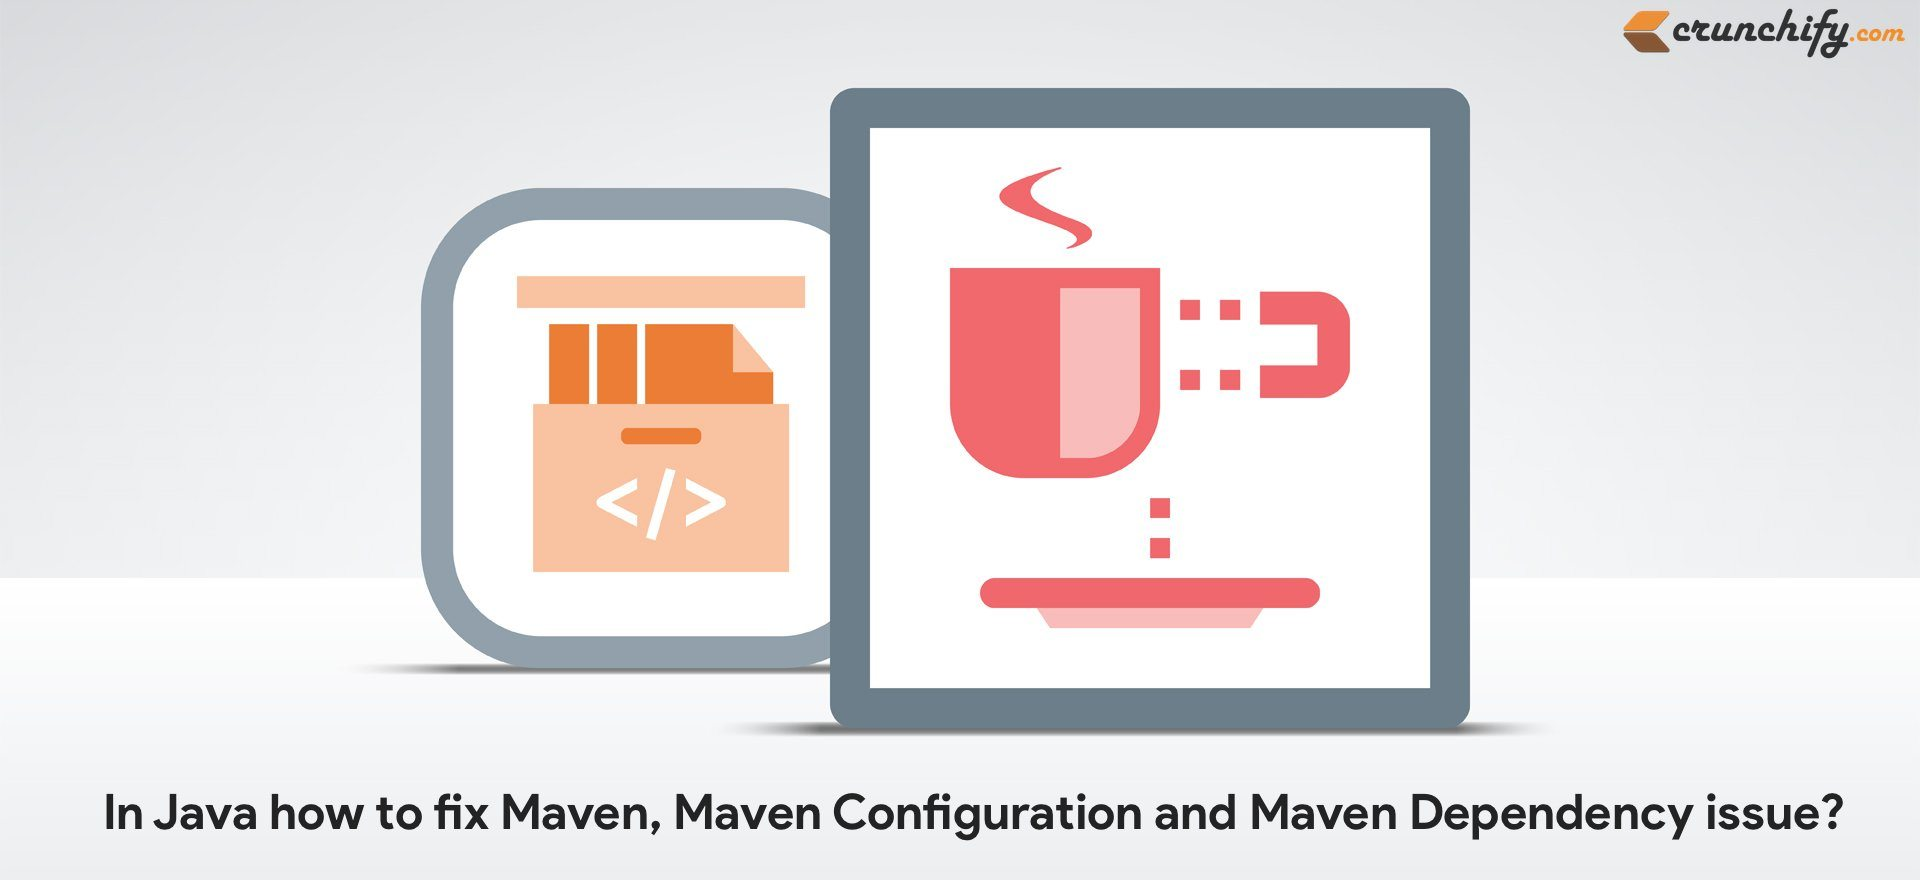 Apache Maven Is A Software Project Management Tool Based On The Concept Of  A Project Object Model ( Pom ), Maven Can Manage A Project's Build,